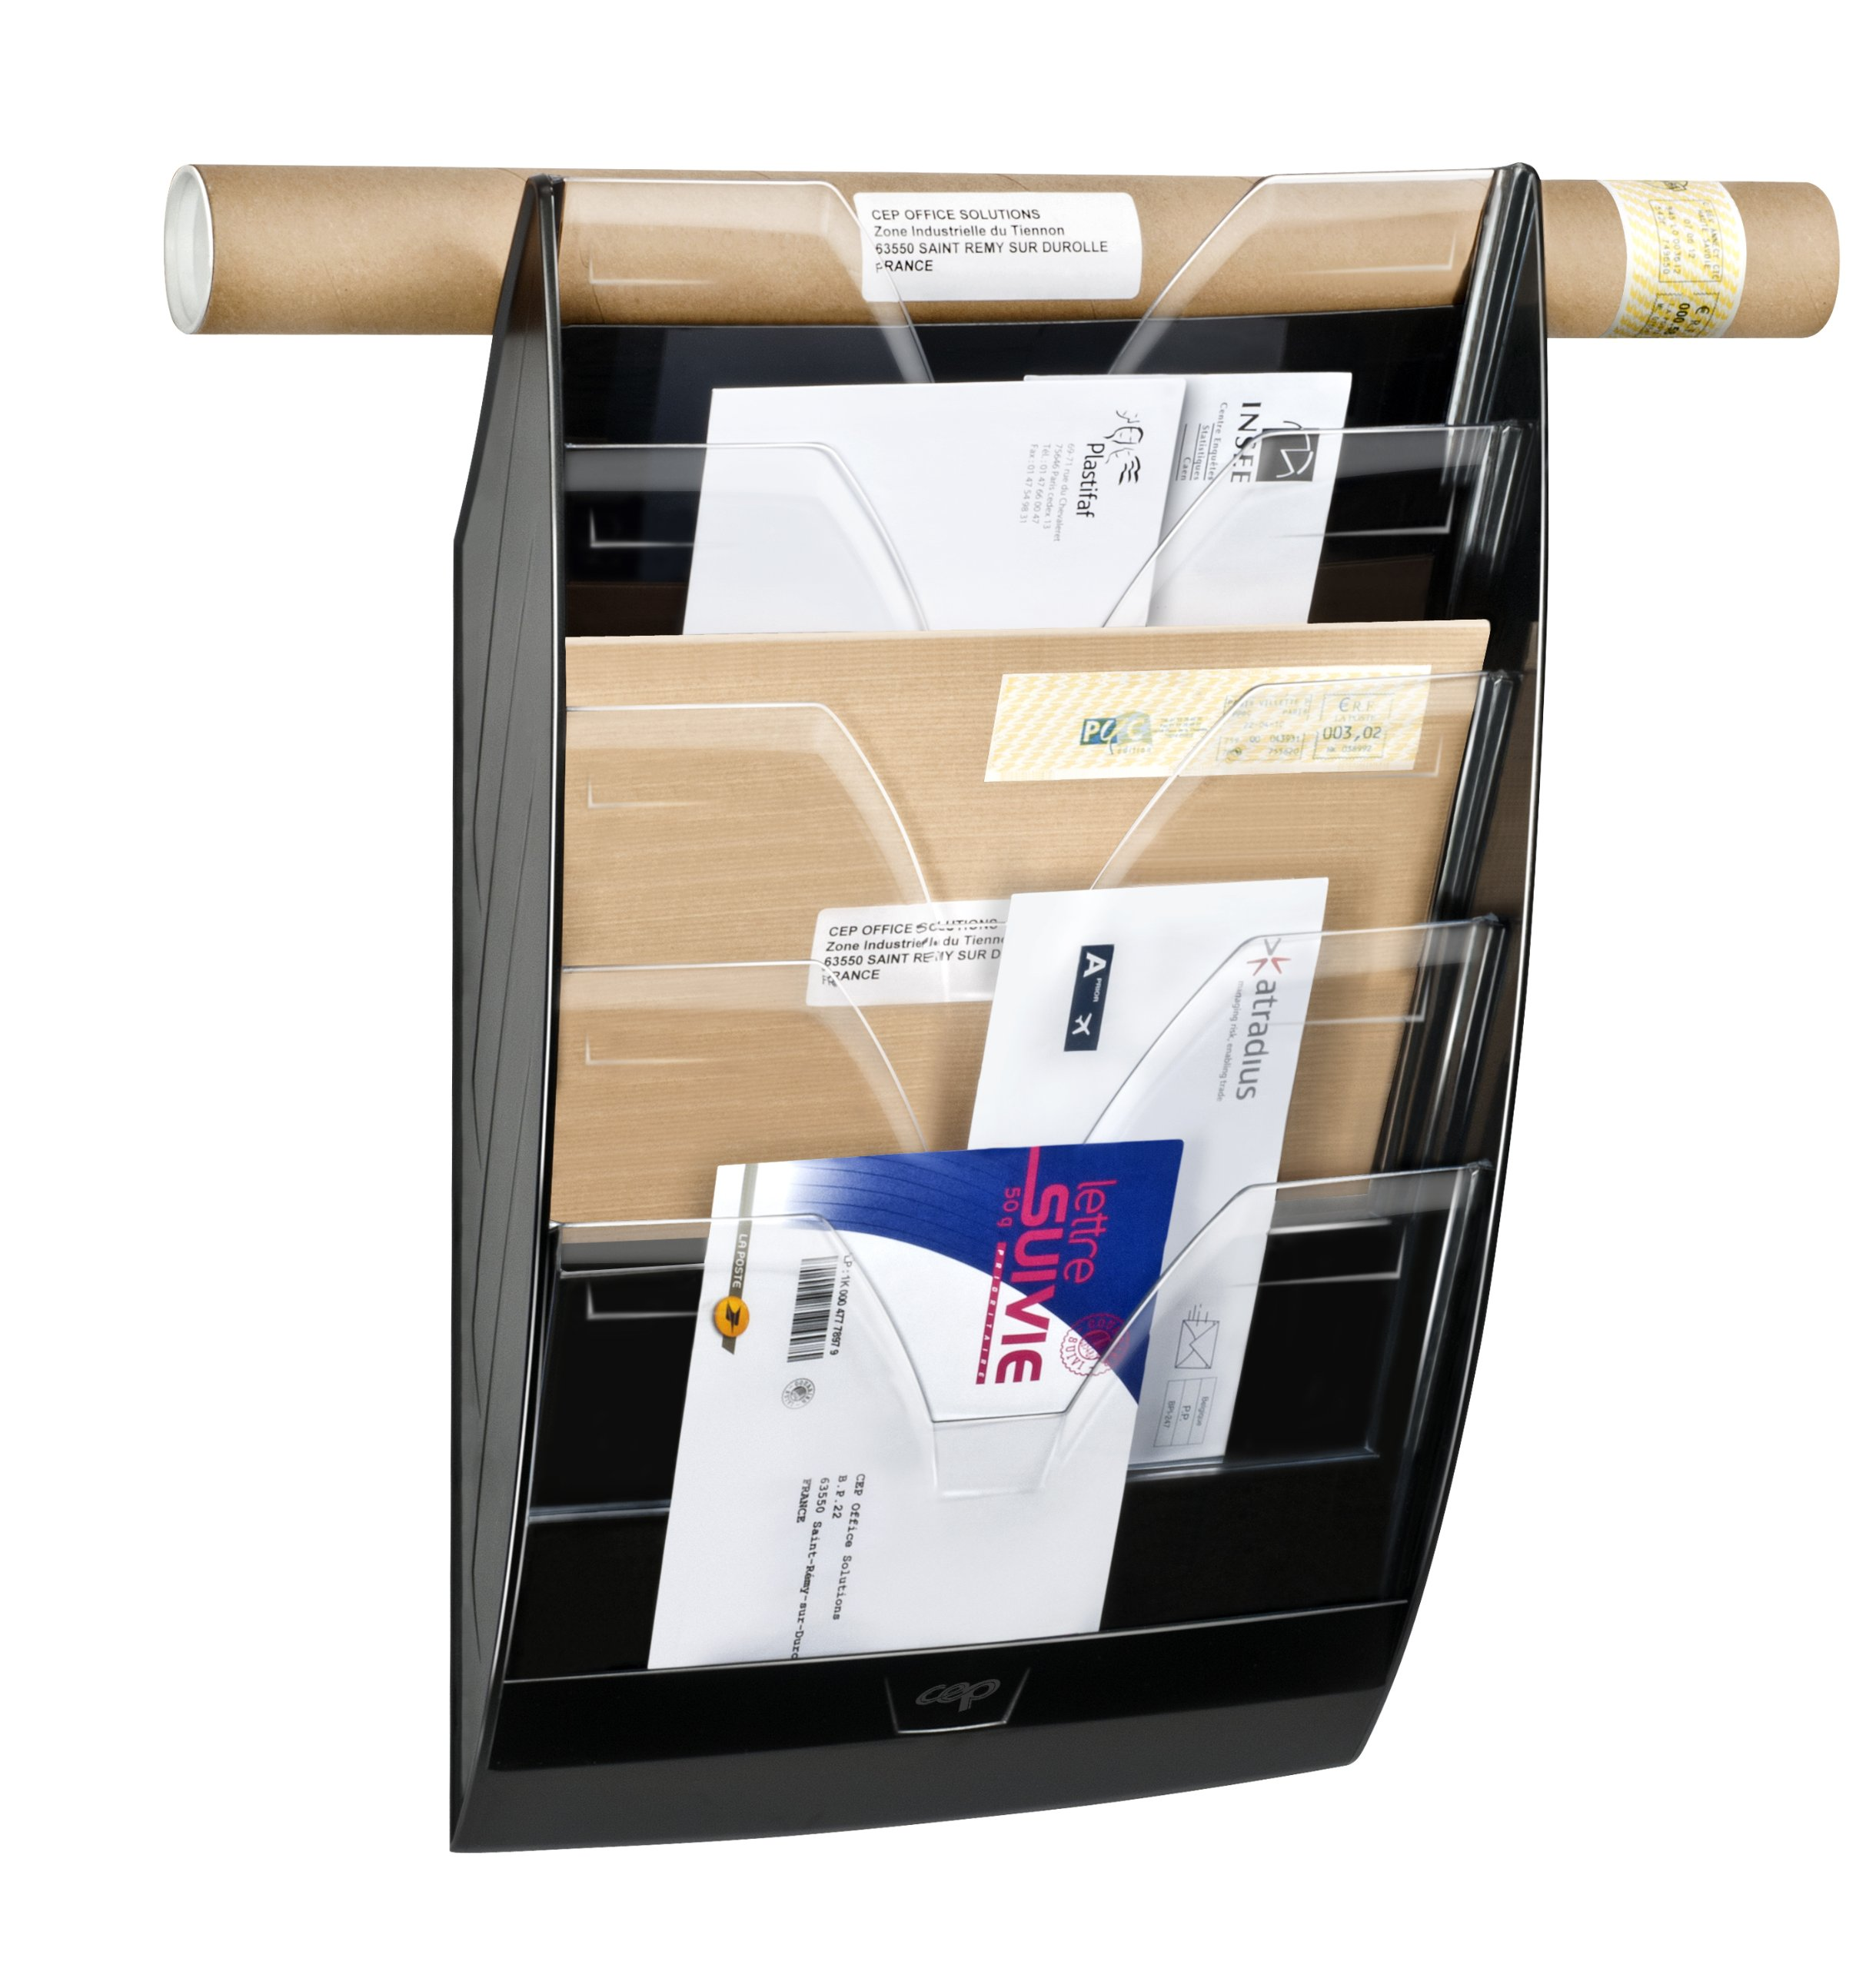 CEP Heavy-Duty 5-Section Wall File, 13.9 x 22.9 x 4.9 Inches, Black (CEP1540011)